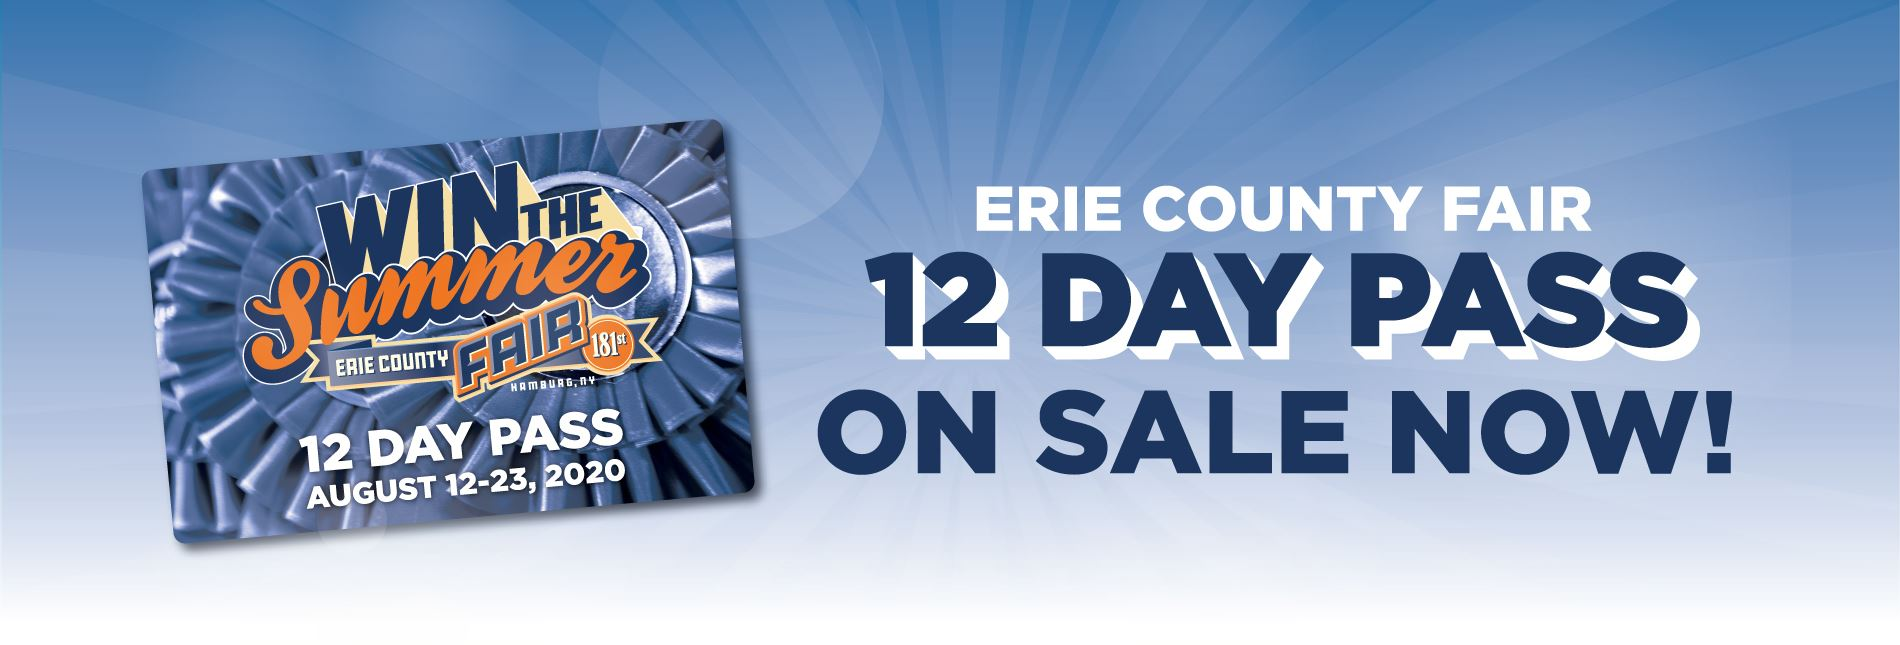 12 Day Pass on sale now!